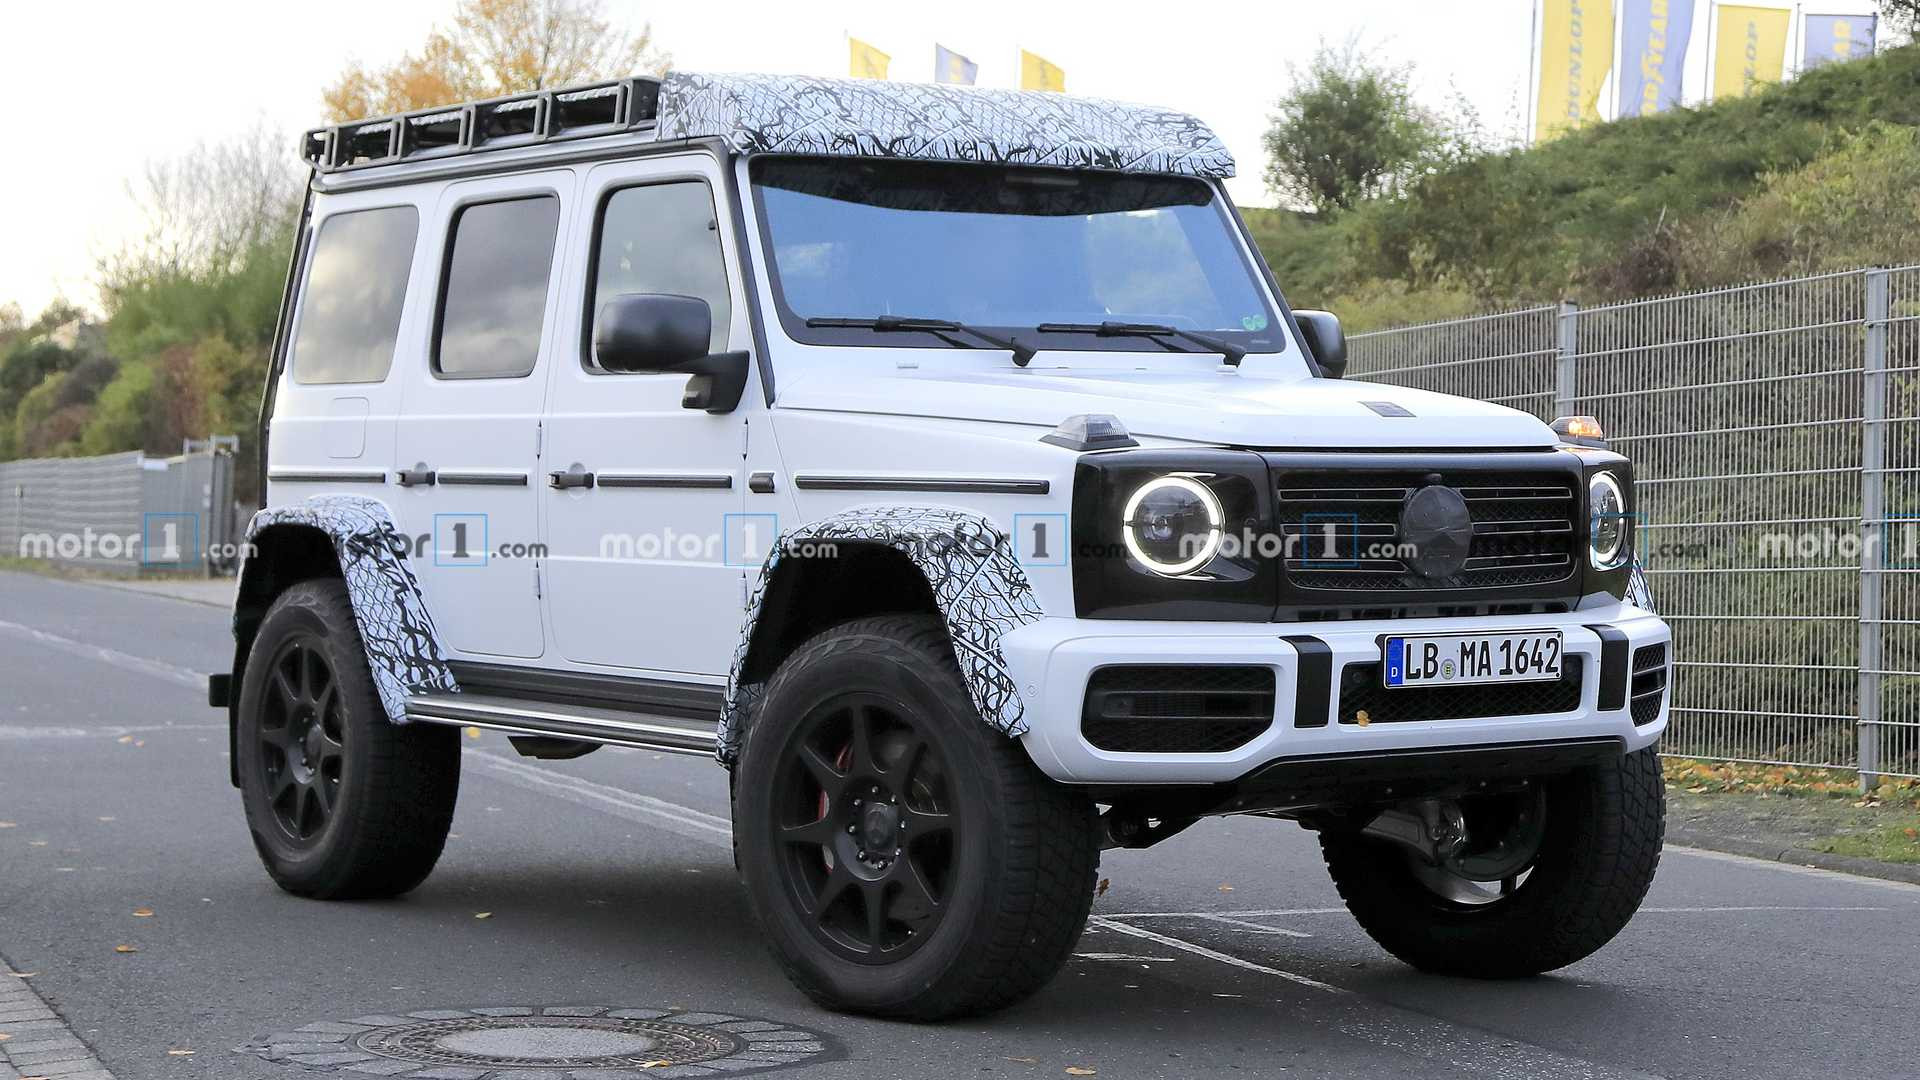 Mercedes G-Class 4x4 Squared Spied Riding Tall While Looking Brawny